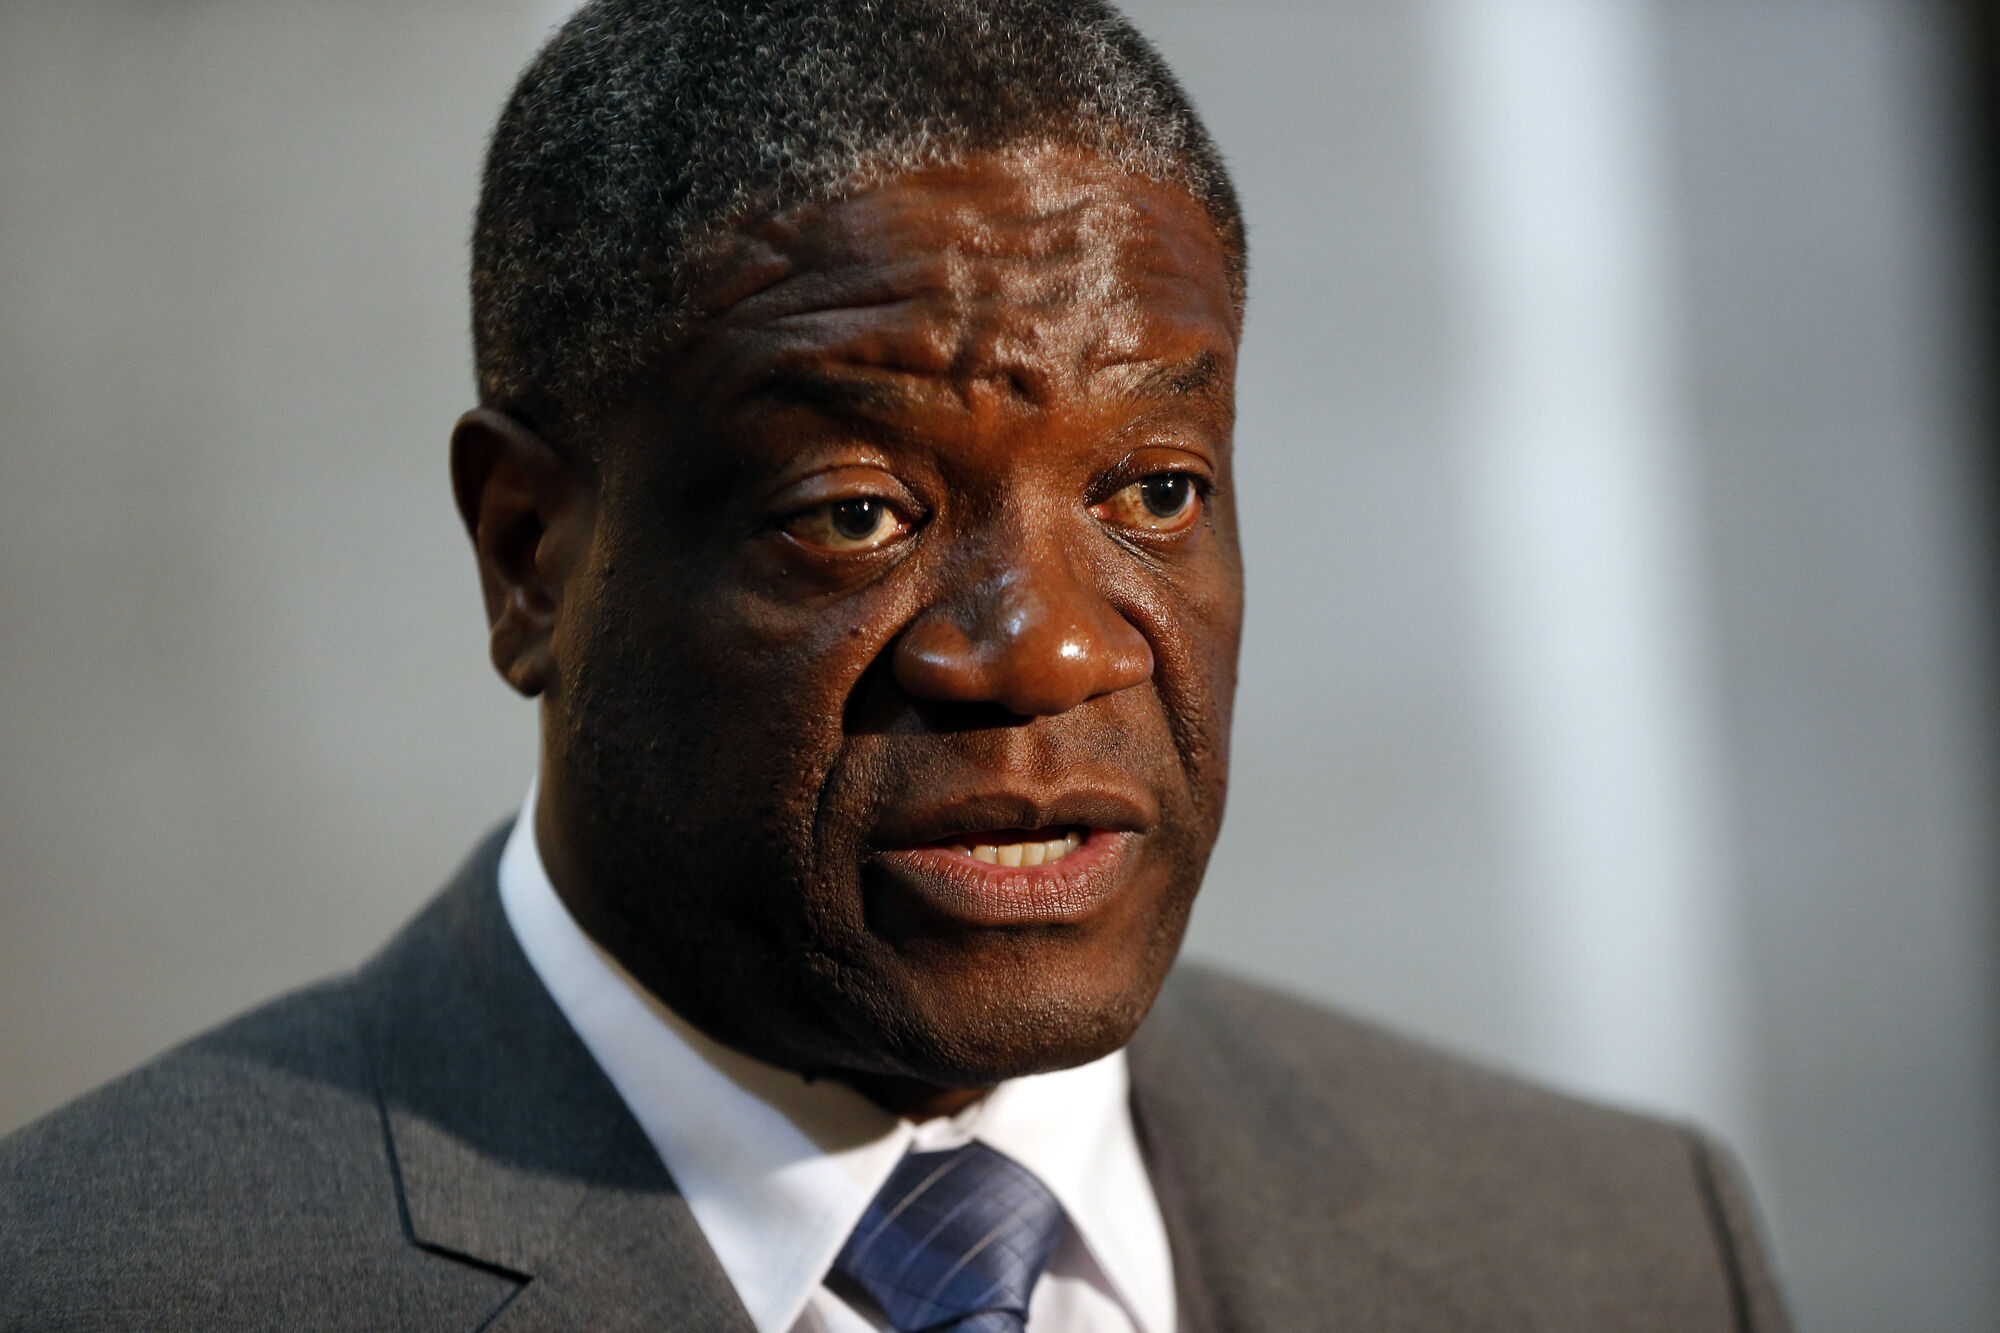 Dr. Denis Mukwege, founder of the Panzi Hospital for women who've been brutalized by deadly conflict in Democratic Republic of Congo.  He's in Winnipeg for the first time to fundraise for the internationally renowned hospital.